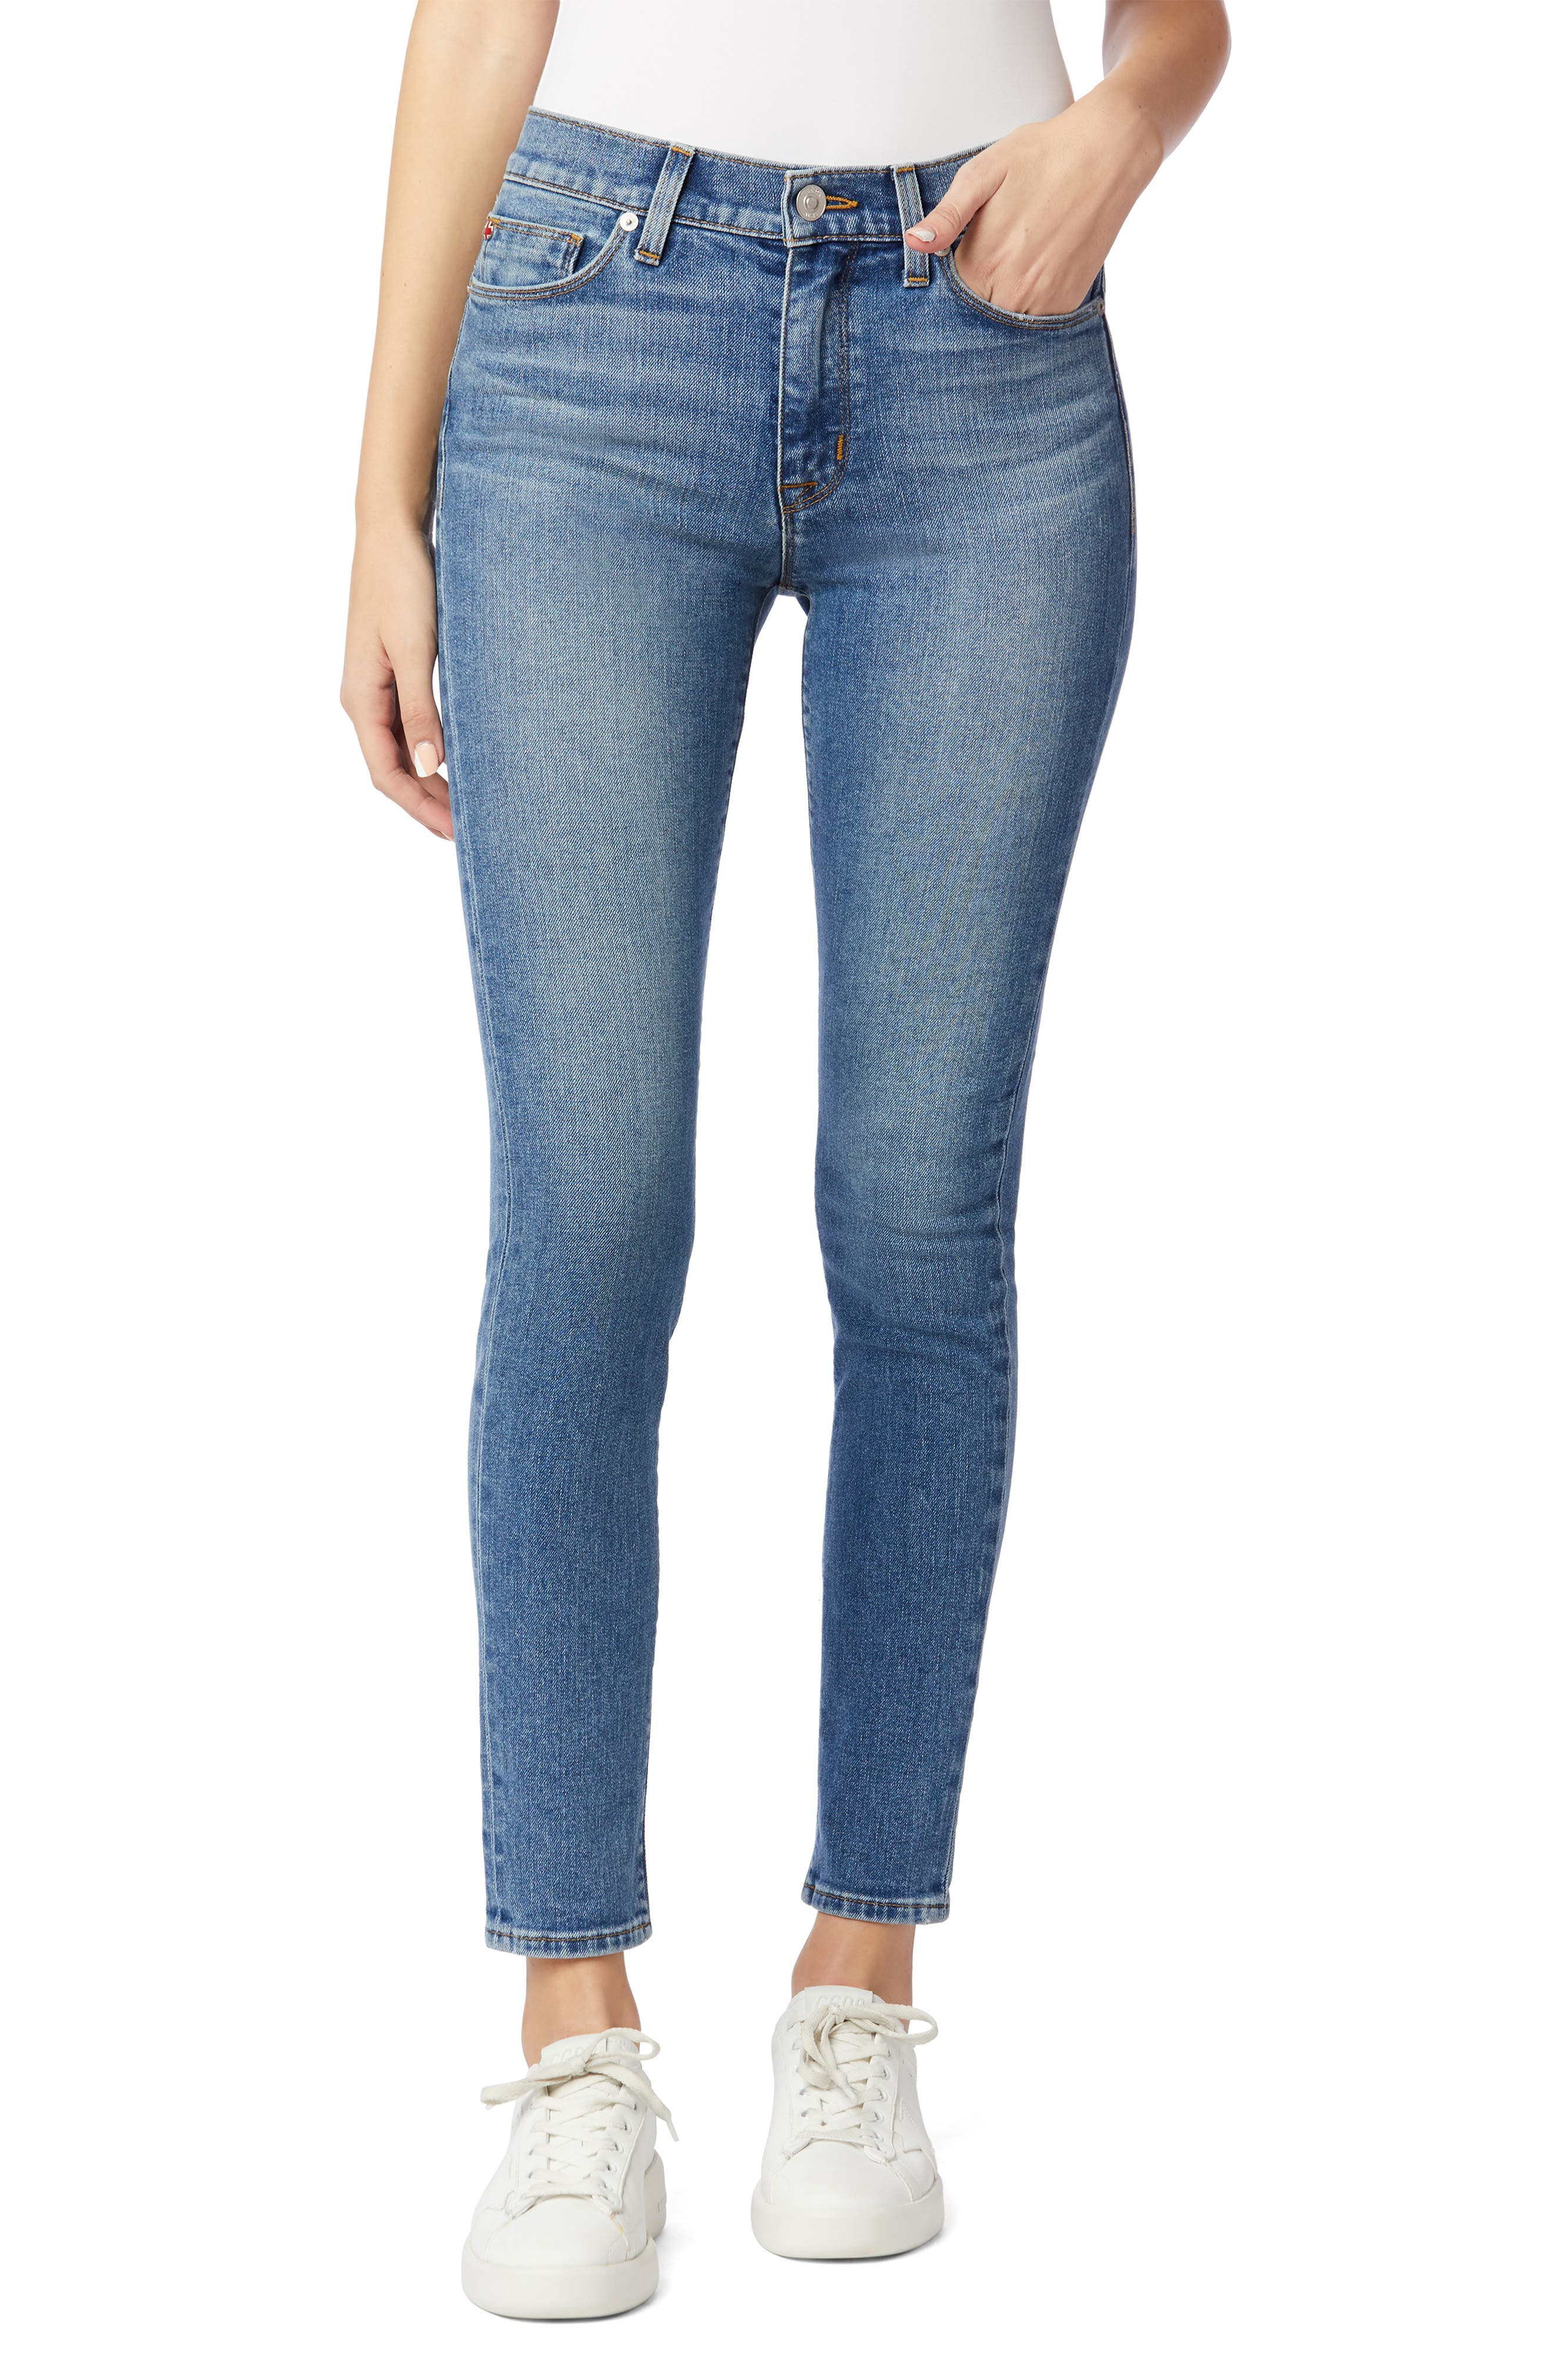 Jeans Blair High Rise Skinny Jeans